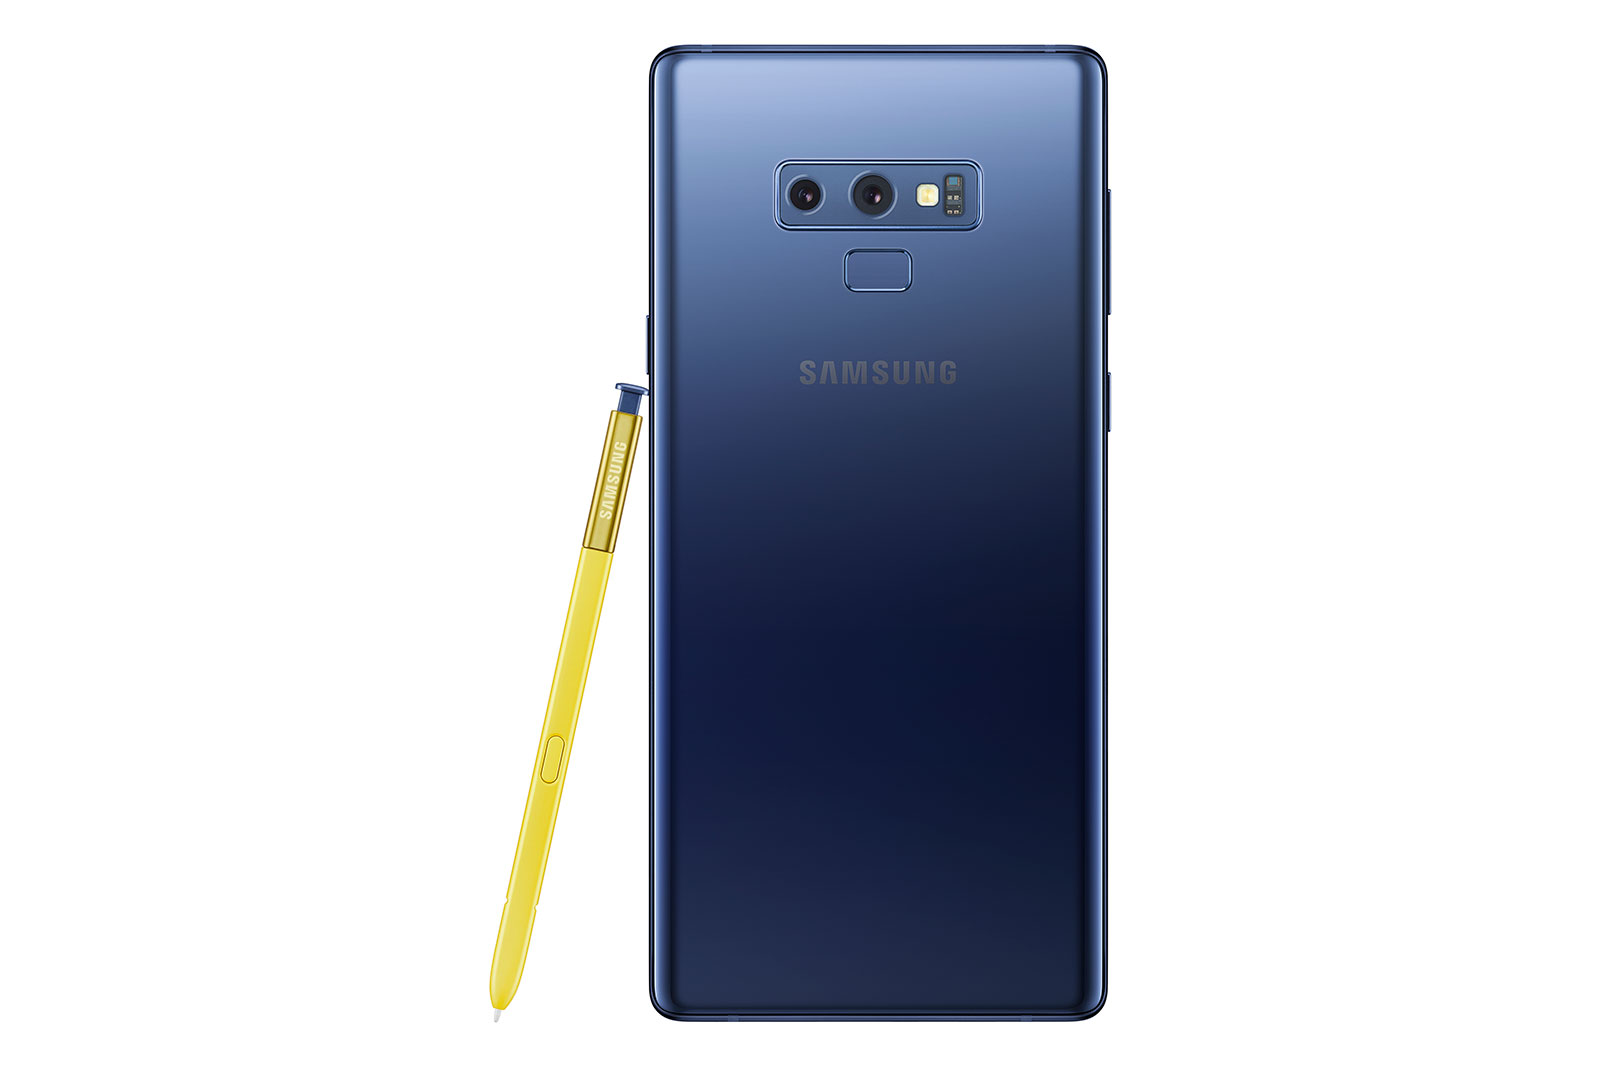 samsung galaxy note 9 vs last year 39 s note 8 what 39 s changed. Black Bedroom Furniture Sets. Home Design Ideas